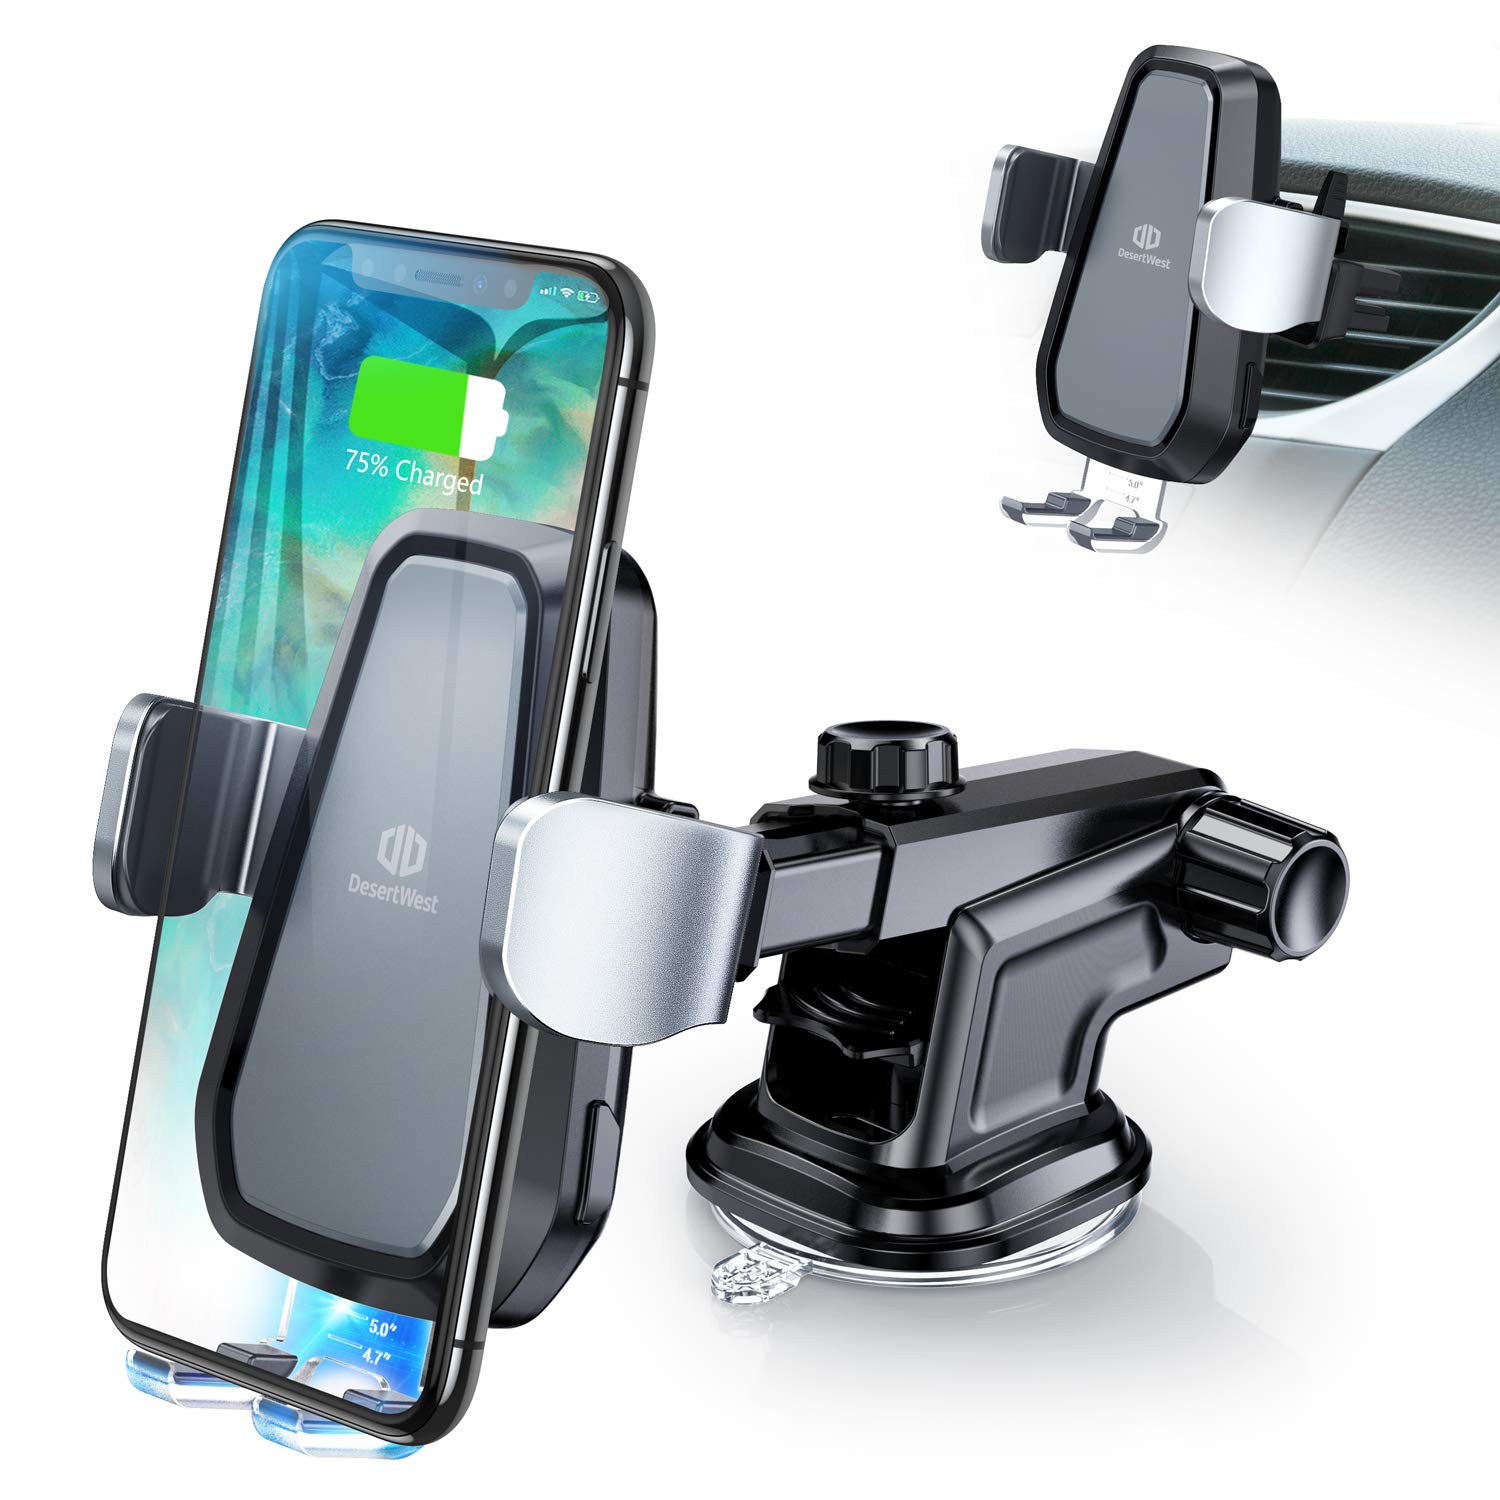 DesertWest Wireless Car Charger Mount Automatic Clamping 10W Wireless Car Charger Compatible with Samsung Galaxy S10/S10+/S10e/S9/S9+/S8/S8+, iPhone Xs/XS Max/X